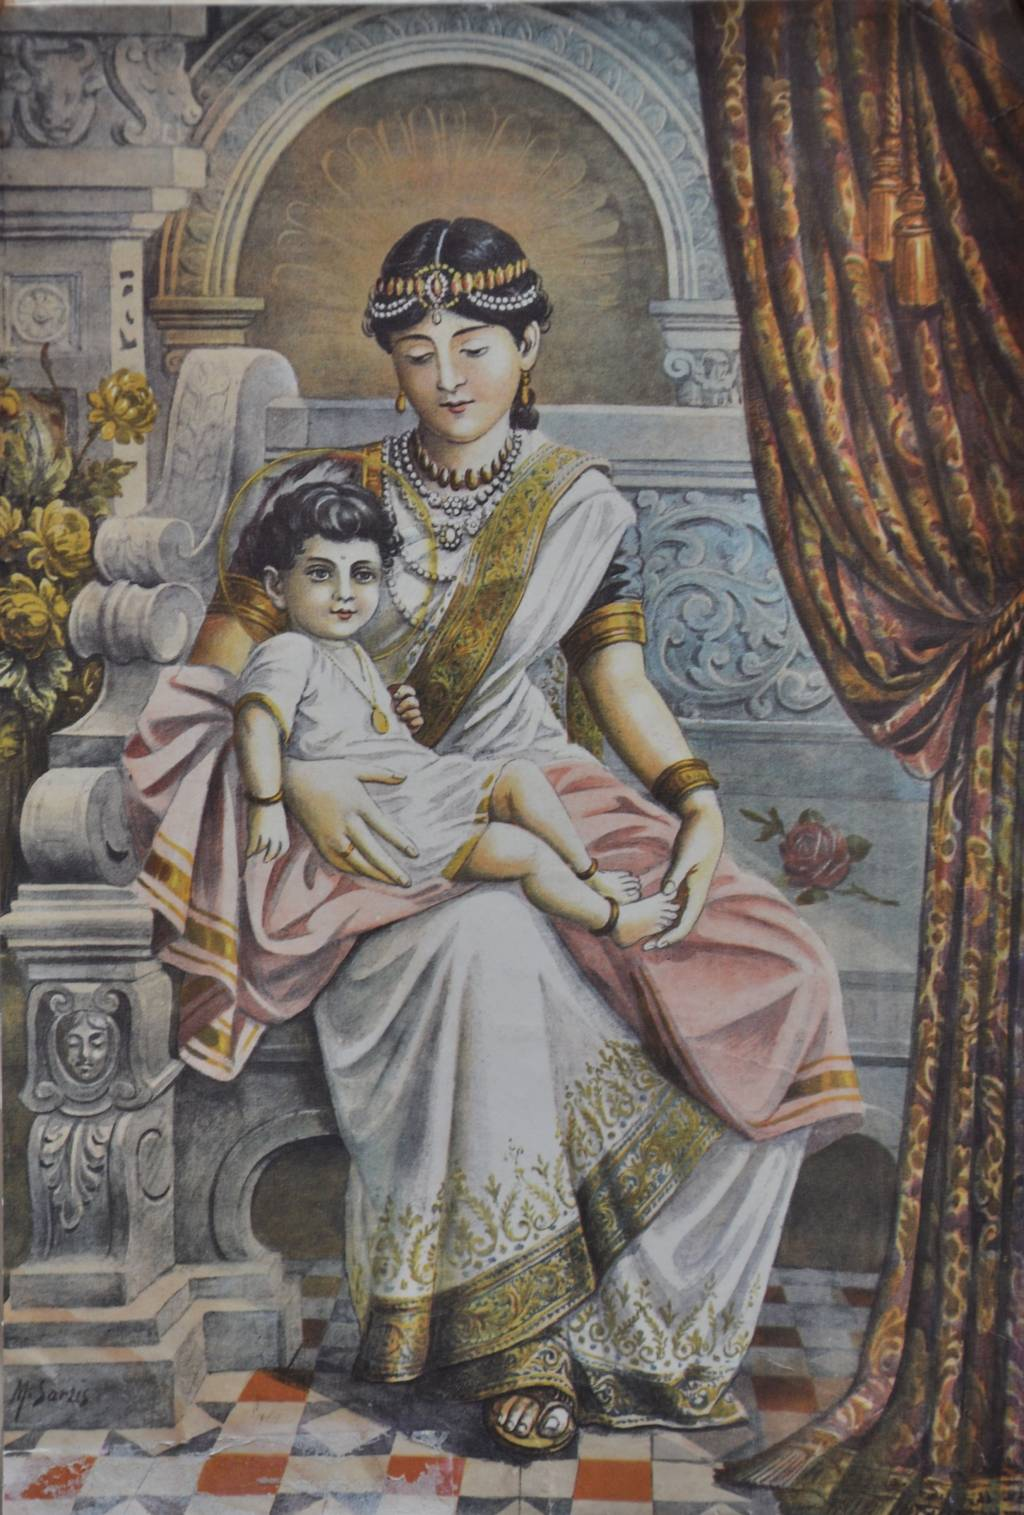 2021_Prince_Siddhartha_with_his_maternal_aunt_Queen_Mahaprajapati_Gotami.jpg